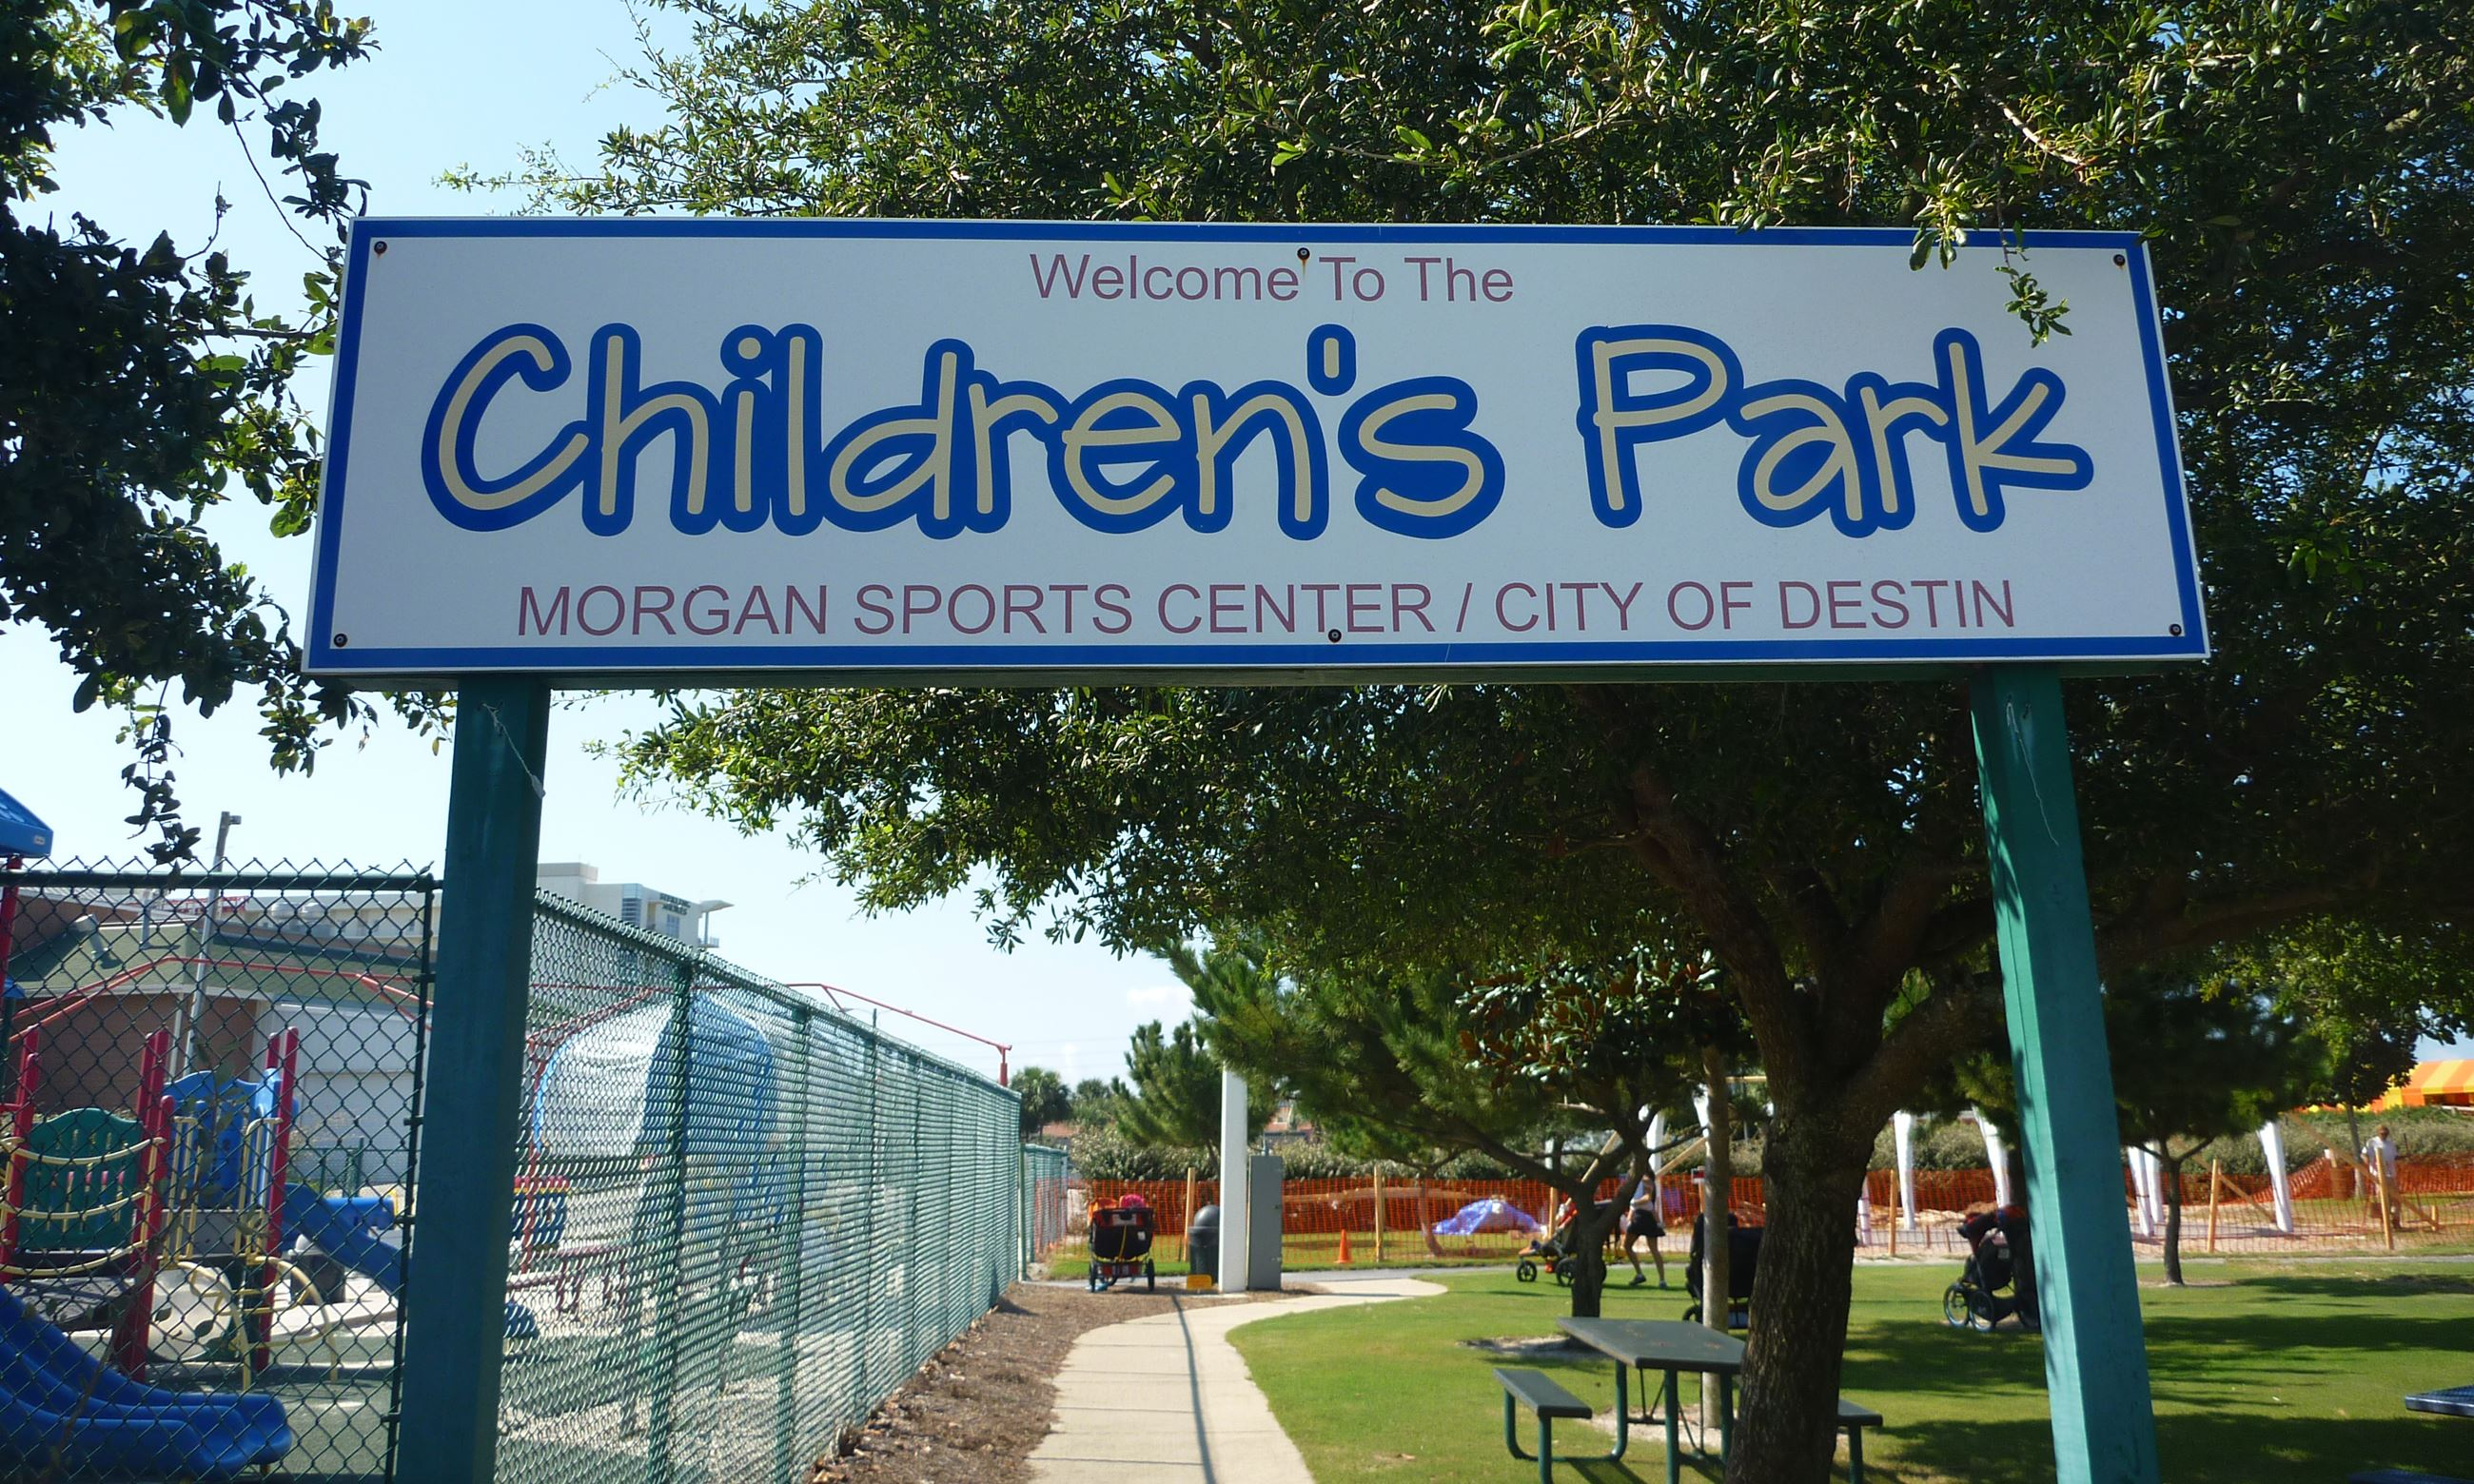 Childrens Park